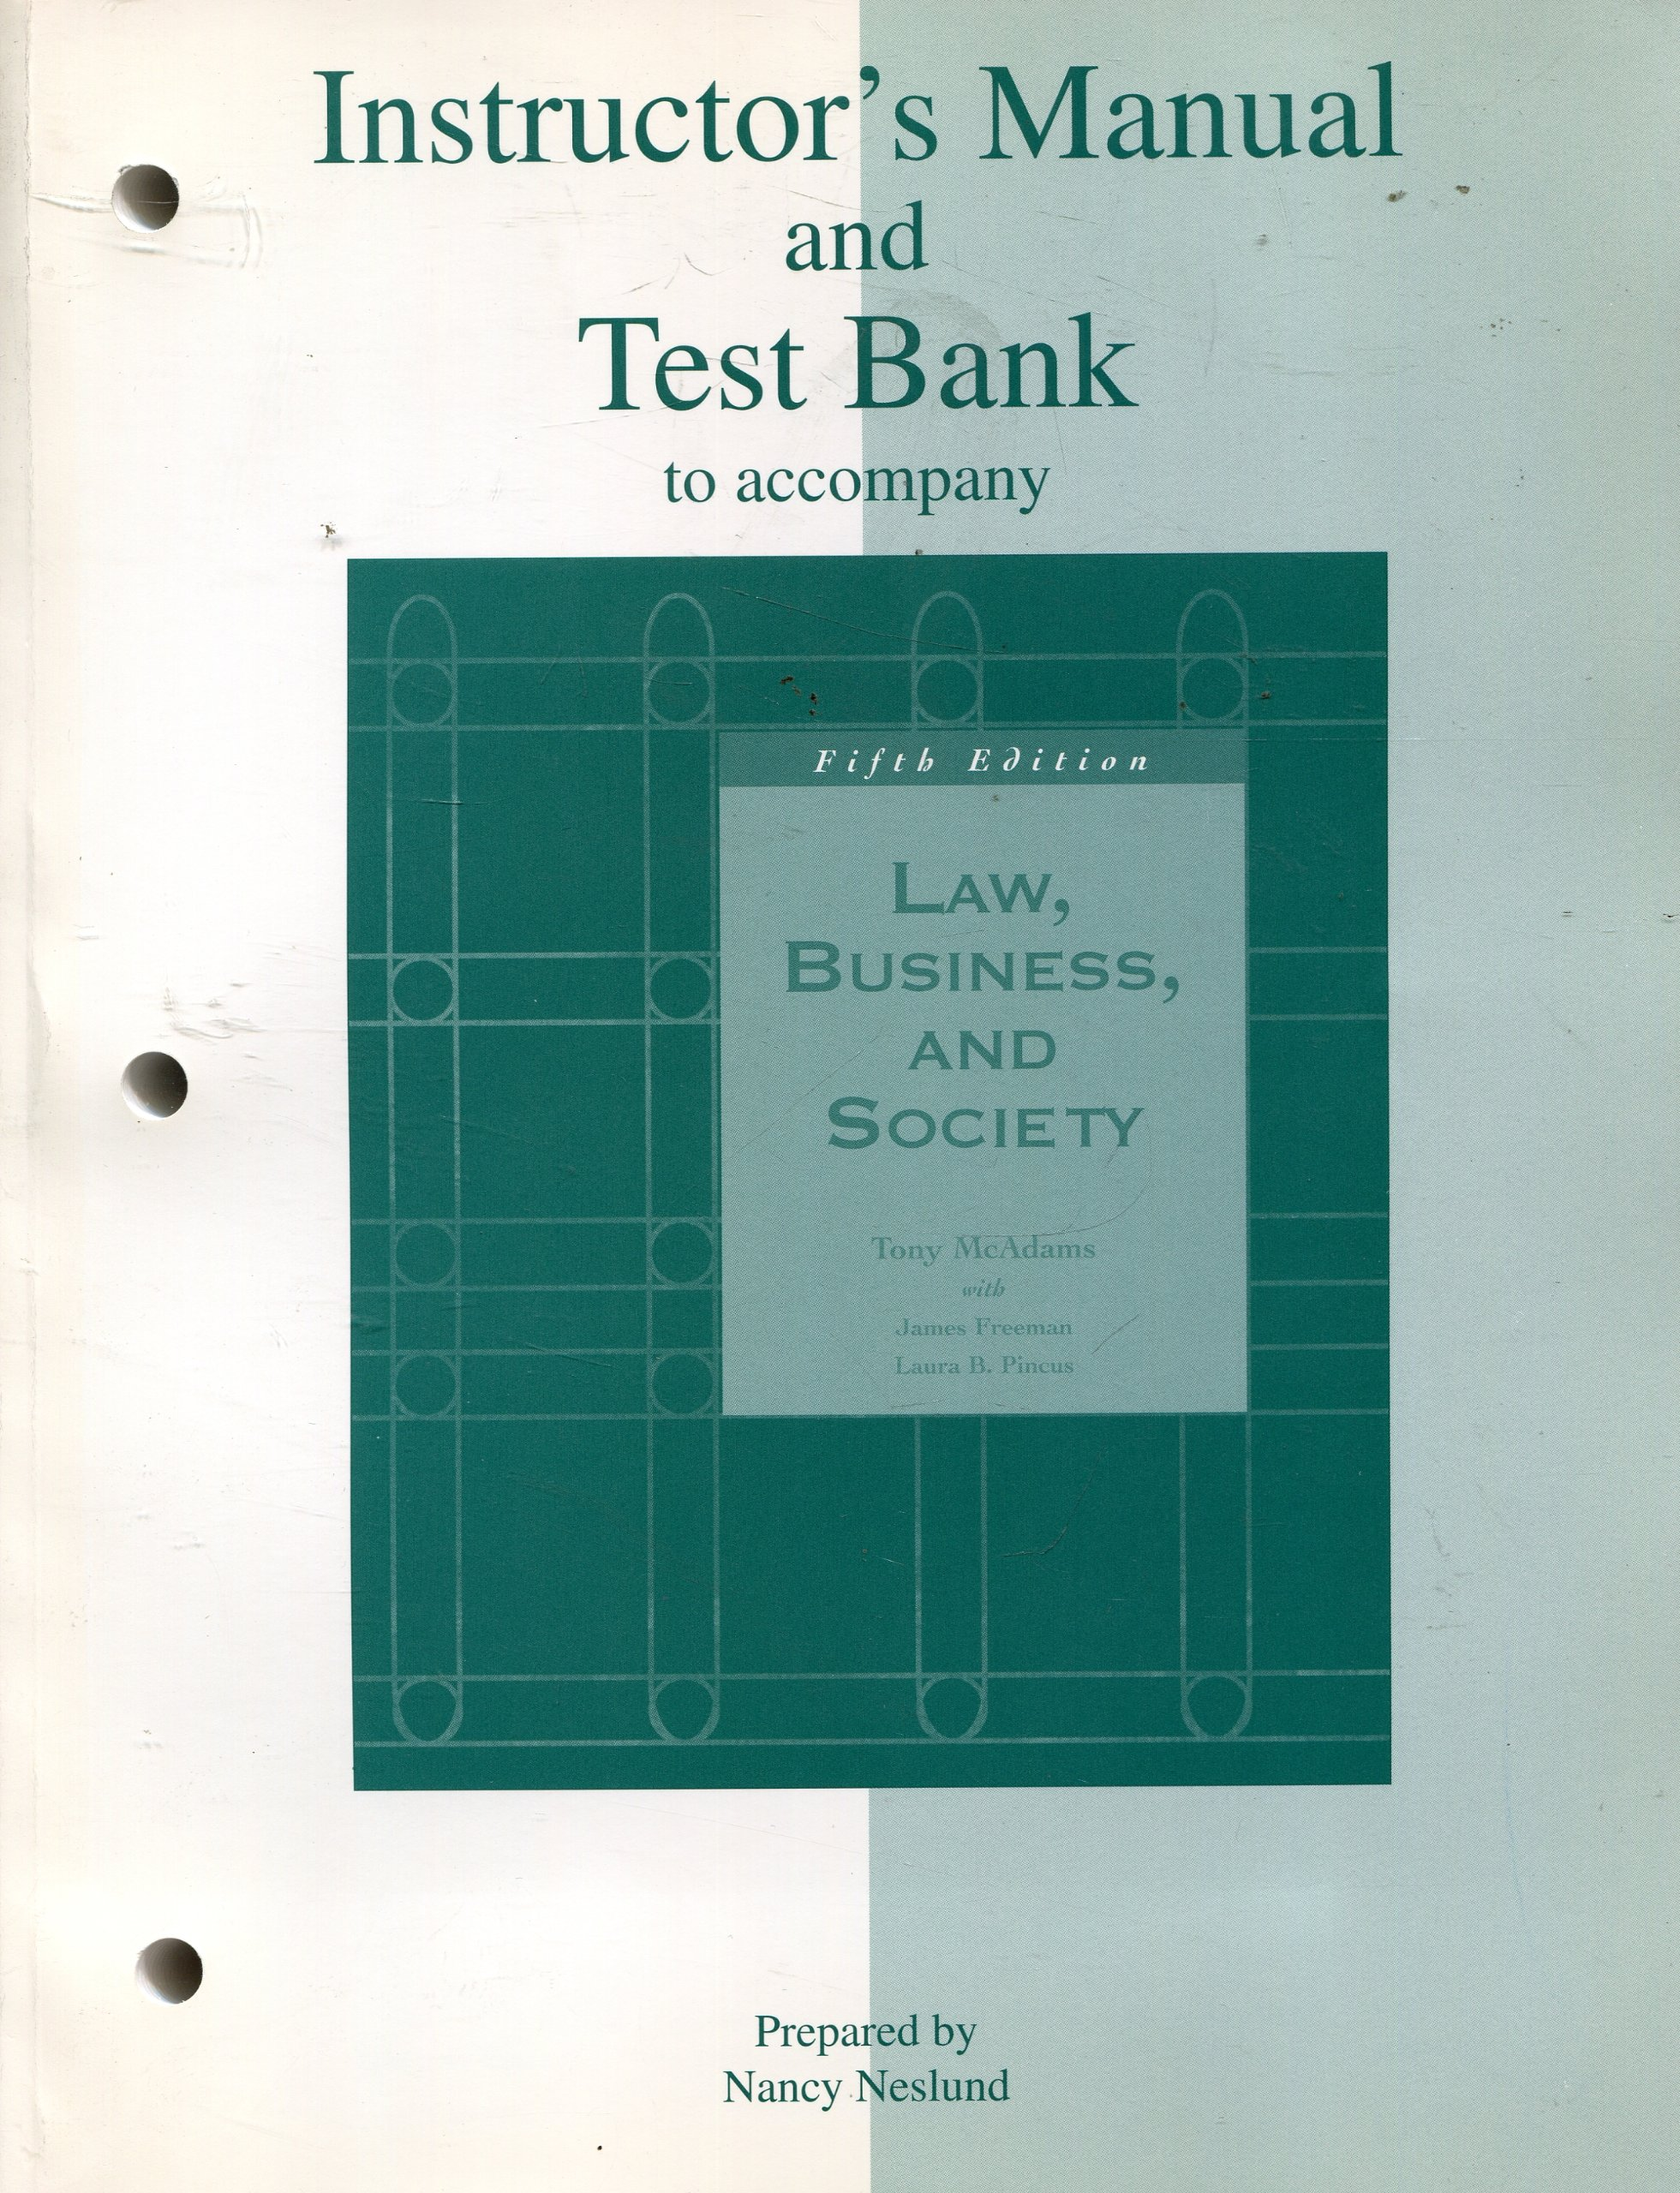 Instructor's Manual and Test Bank to Accompany Law, Business, and Society:  Nancy Neslund: 9780071093408: Amazon.com: Books